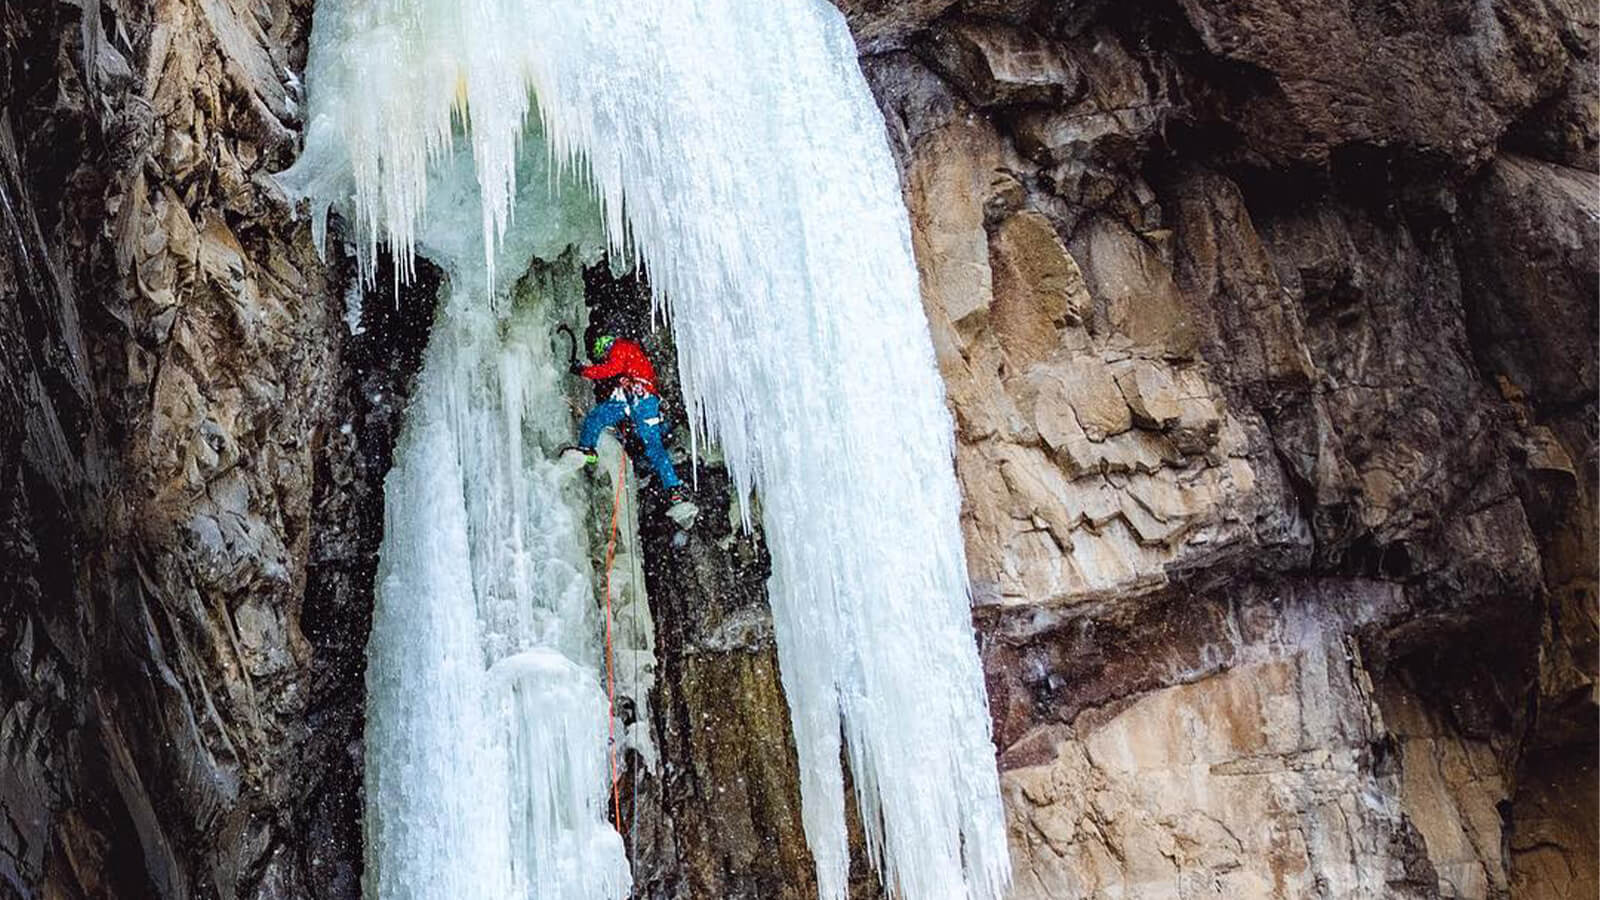 Ice climber scaling frozen waterfall